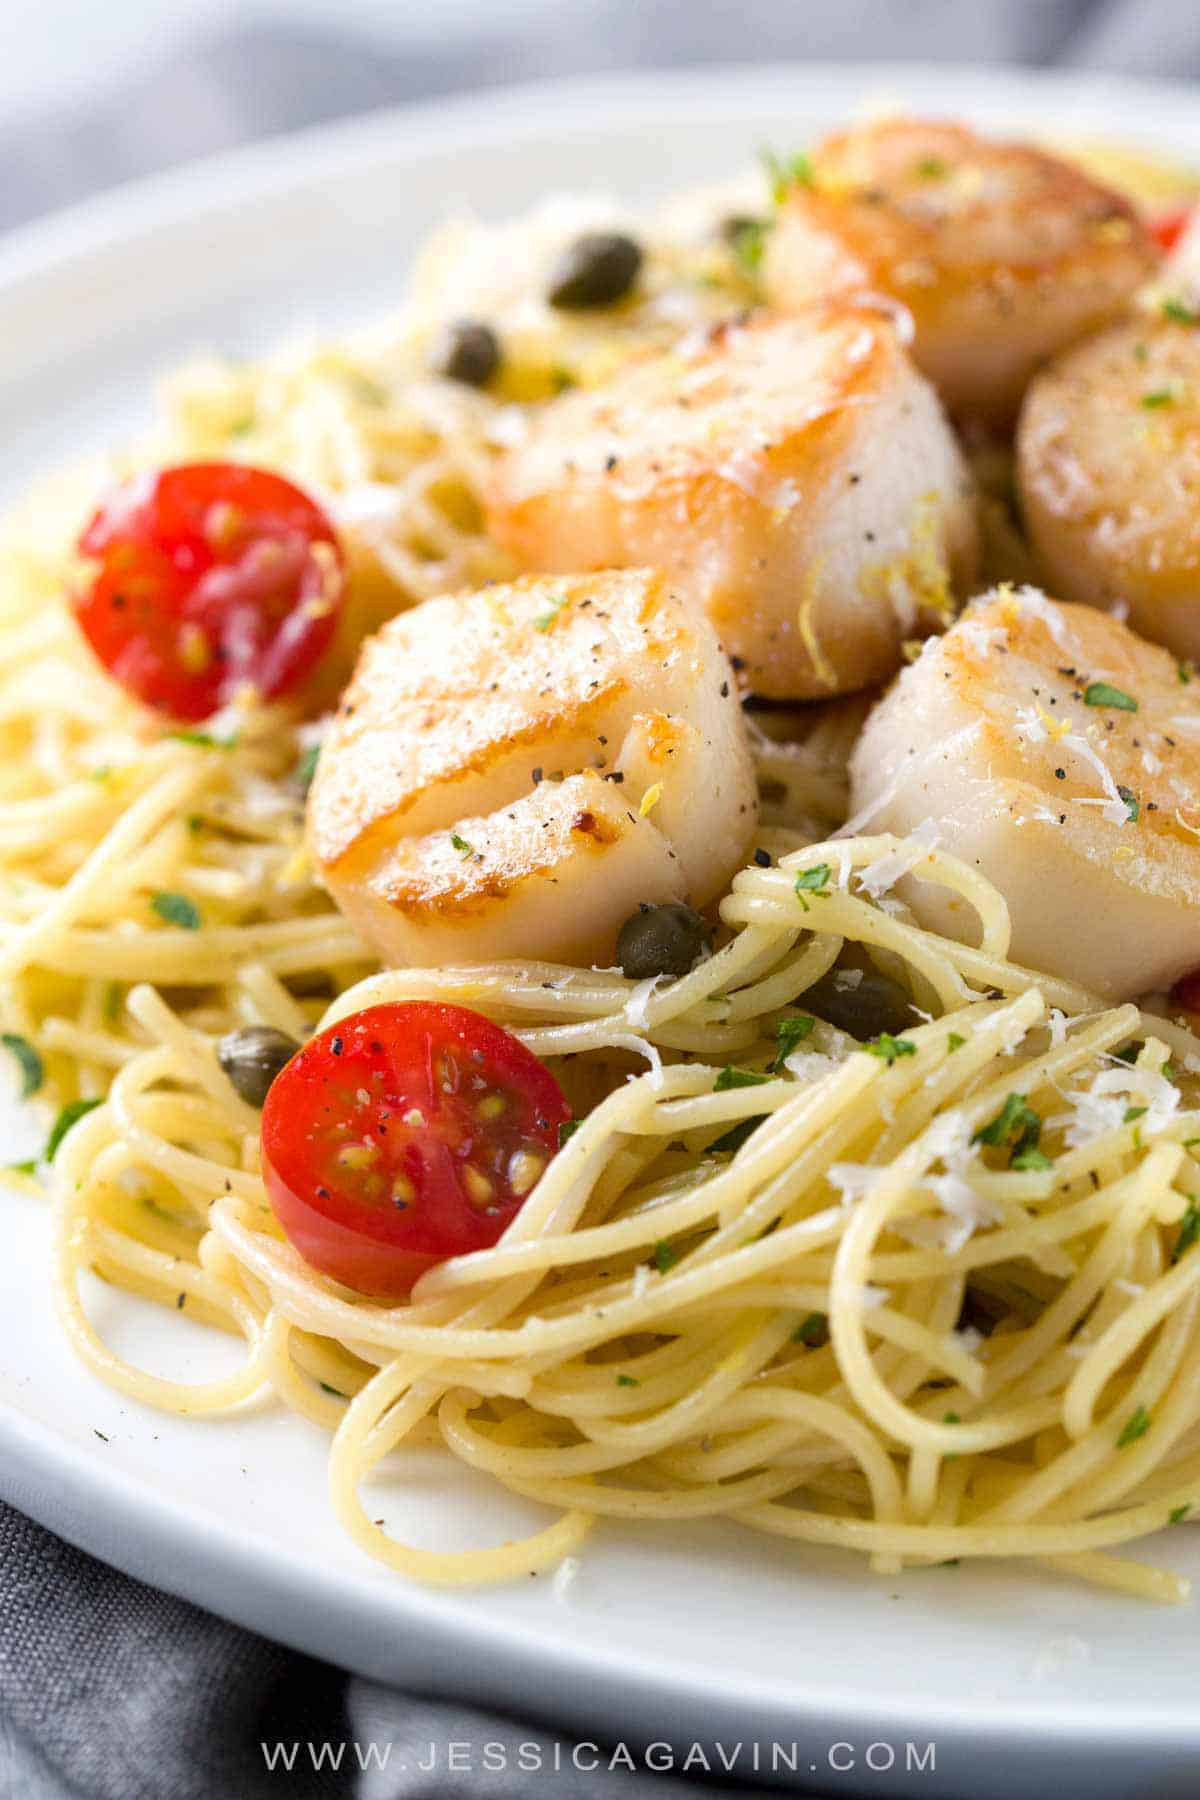 Pan Seared Scallops with Lemon Caper Pasta - Easy gourmet recipe for light angel hair pasta tossed with a citrus white wine sauce and tomatoes. #scallops #lemoncaper #pasta #searedscallops